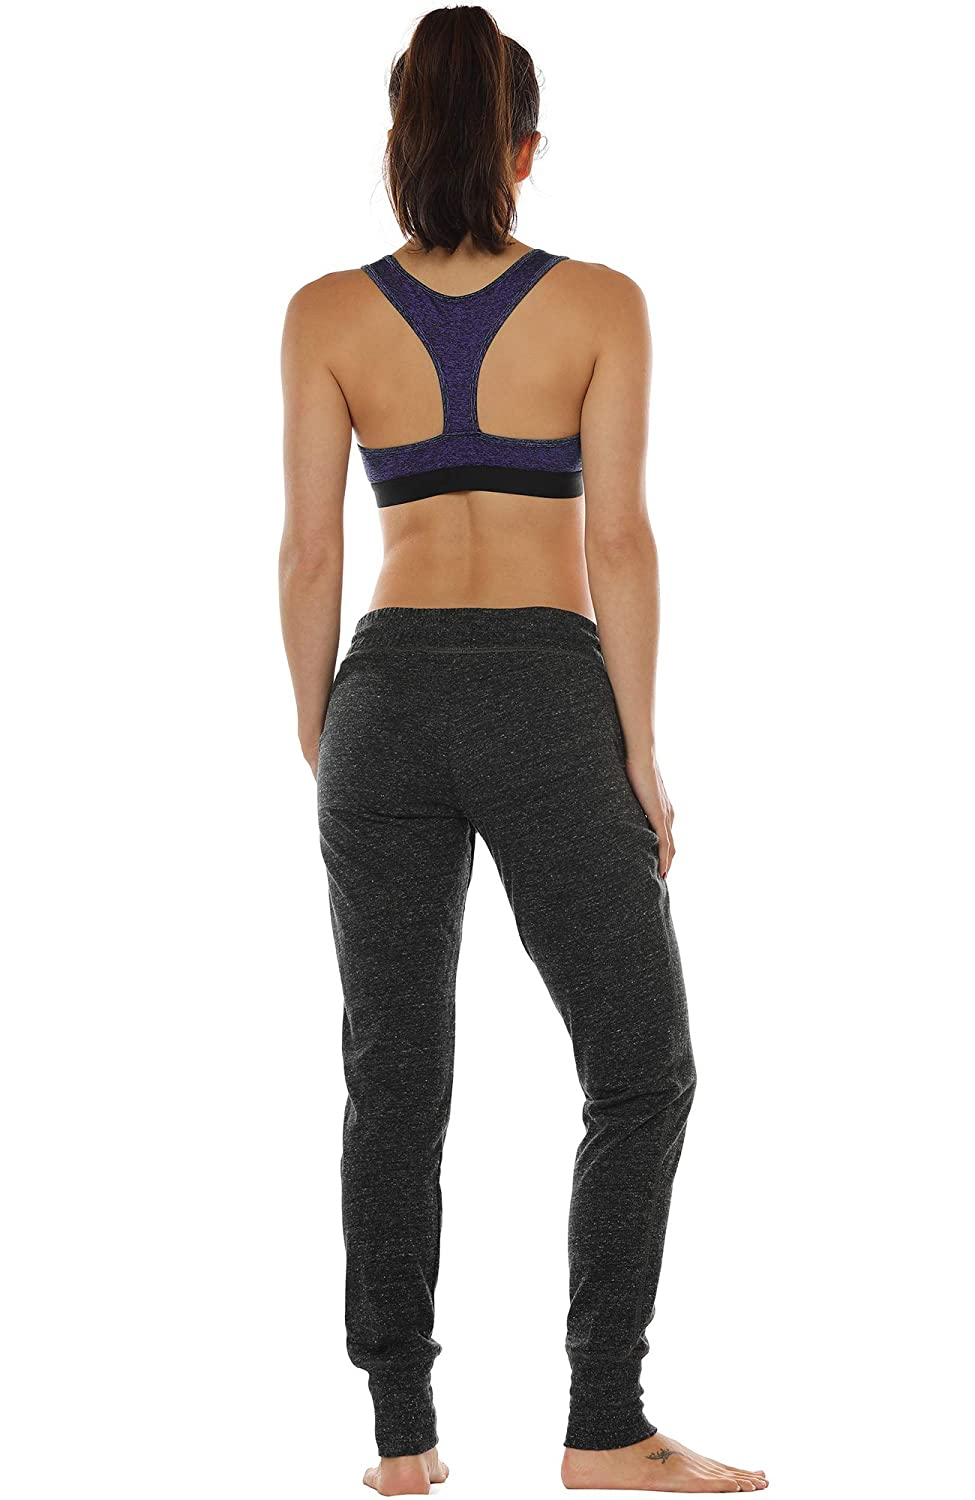 Running Yoga Bra Womens Activewear Top icyzone Racerback Sports Bras for Women Workout Clothes